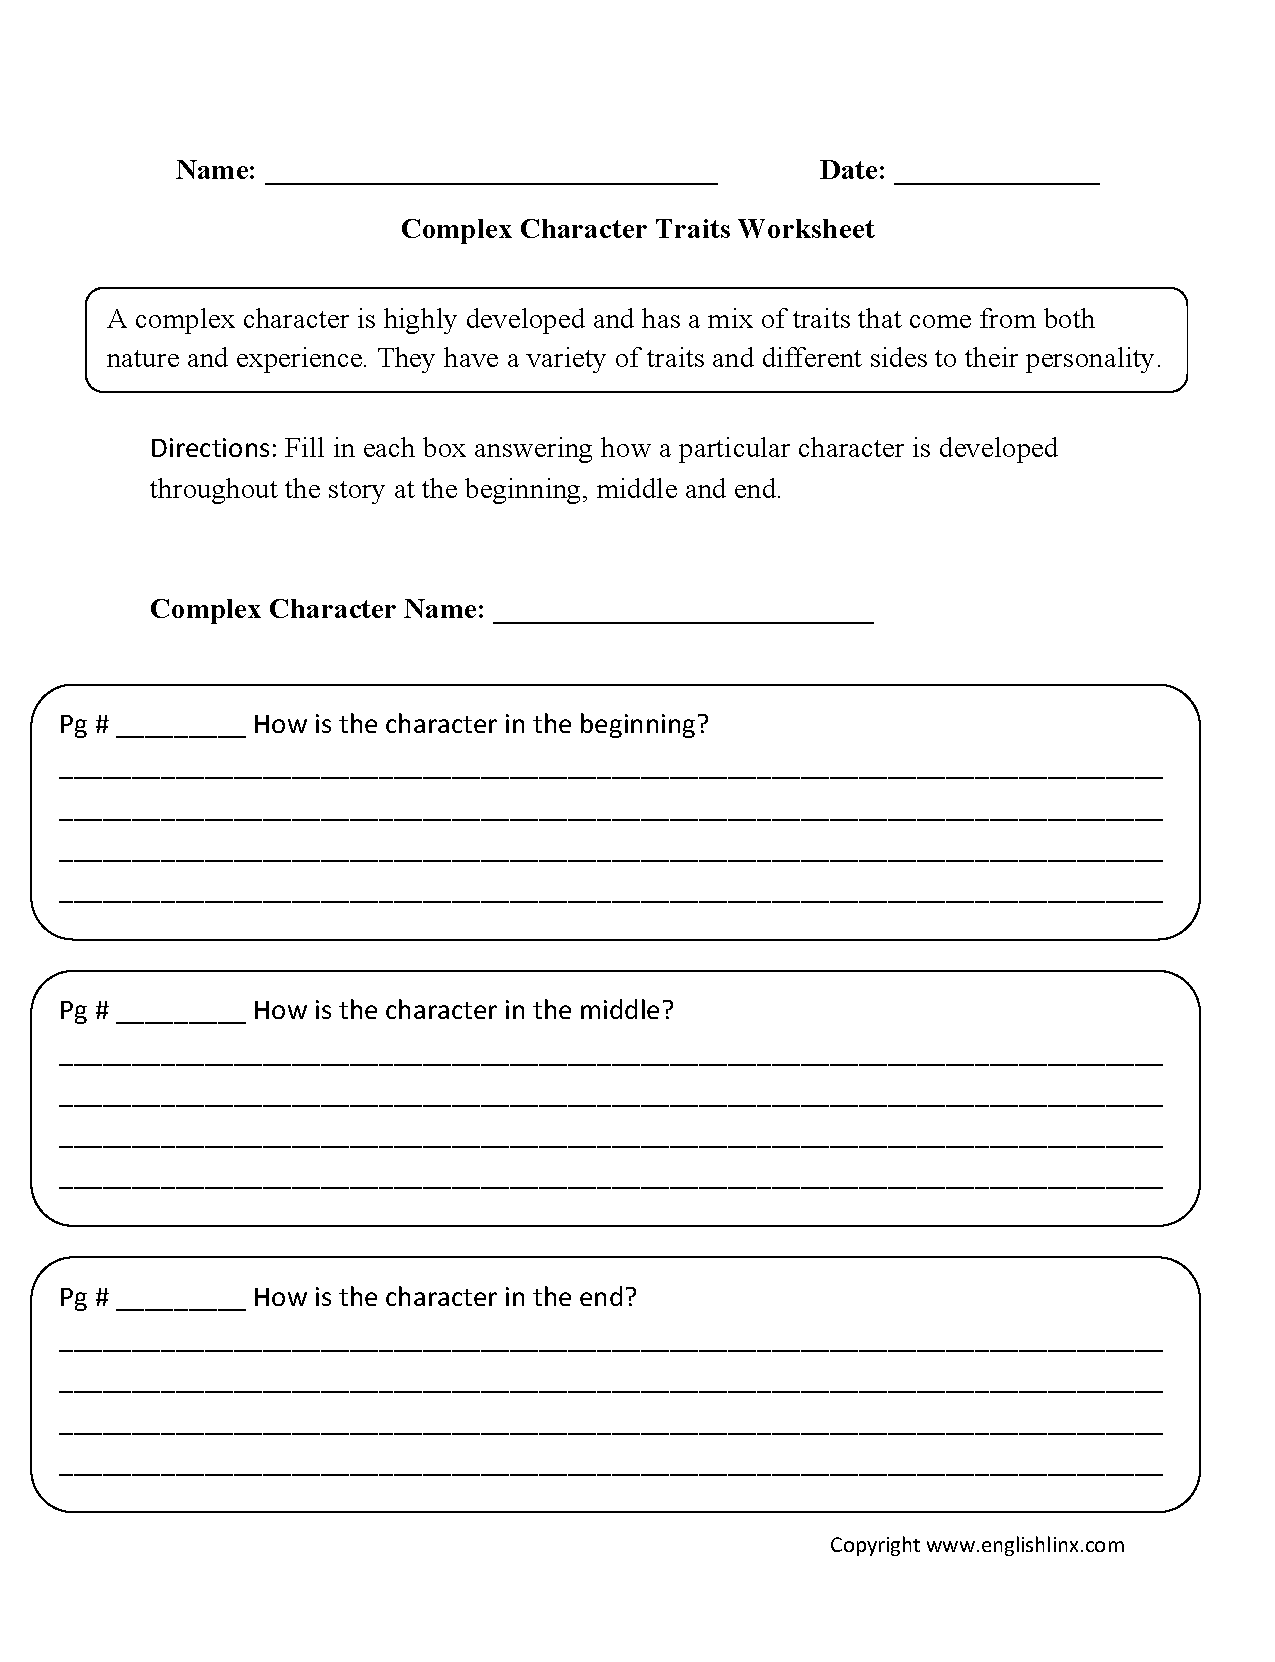 Character Traits Worksheets 3rd Grade